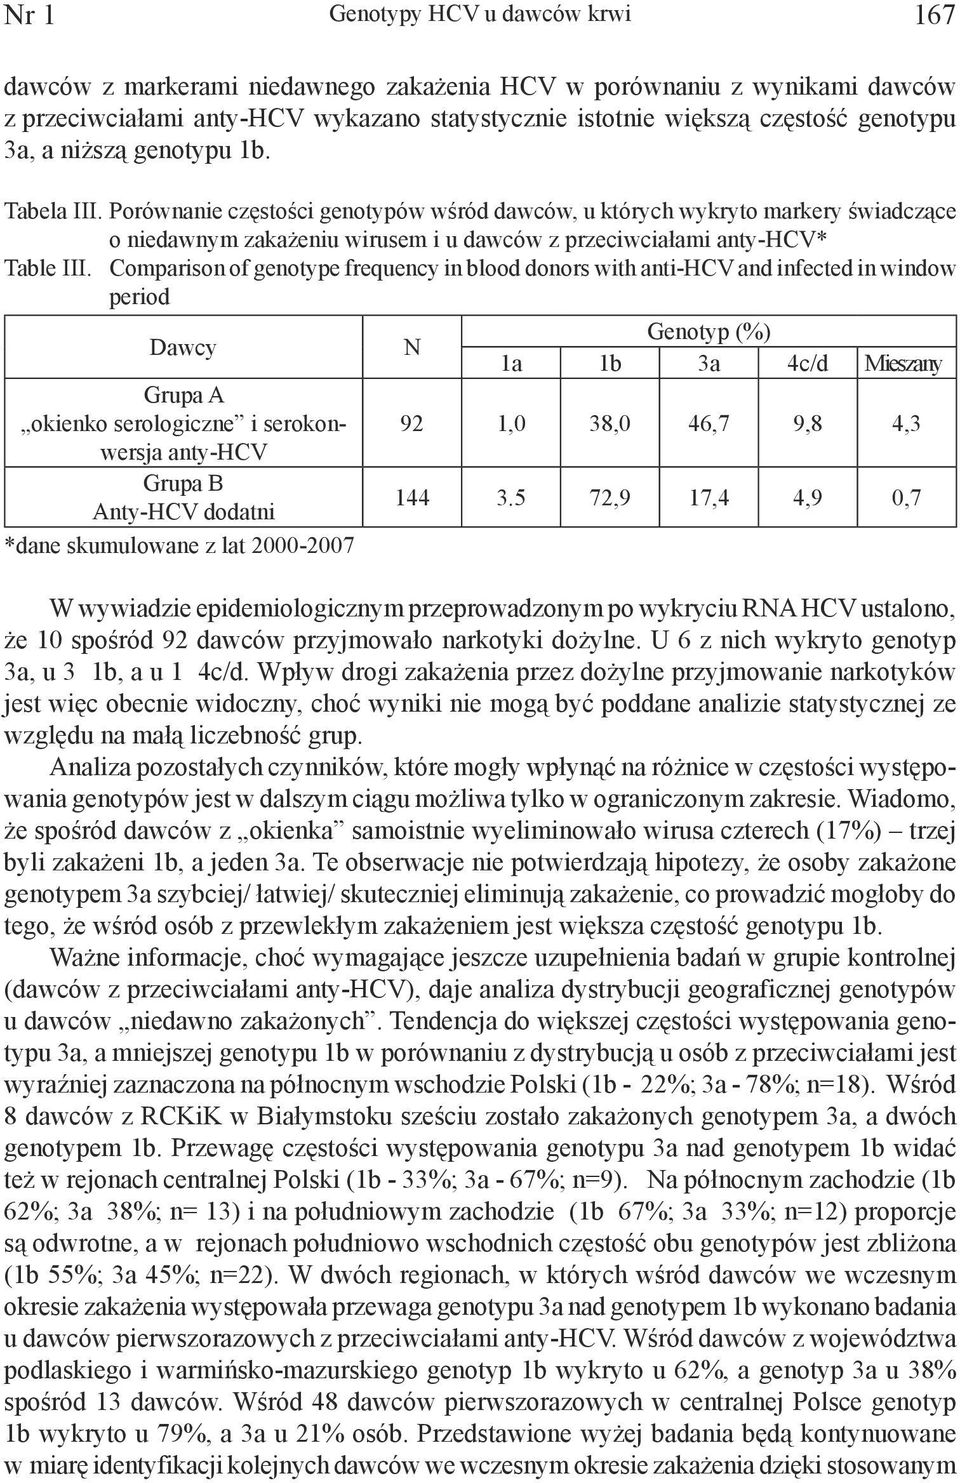 Comparison of genotype frequency in blood donors with anti-hcv and infected in window period Dawcy N Genotyp (%) 1a 1b 3a 4c/d Mieszany Grupa A okienko serologiczne i serokonwersja 92 1,0 38,0 46,7